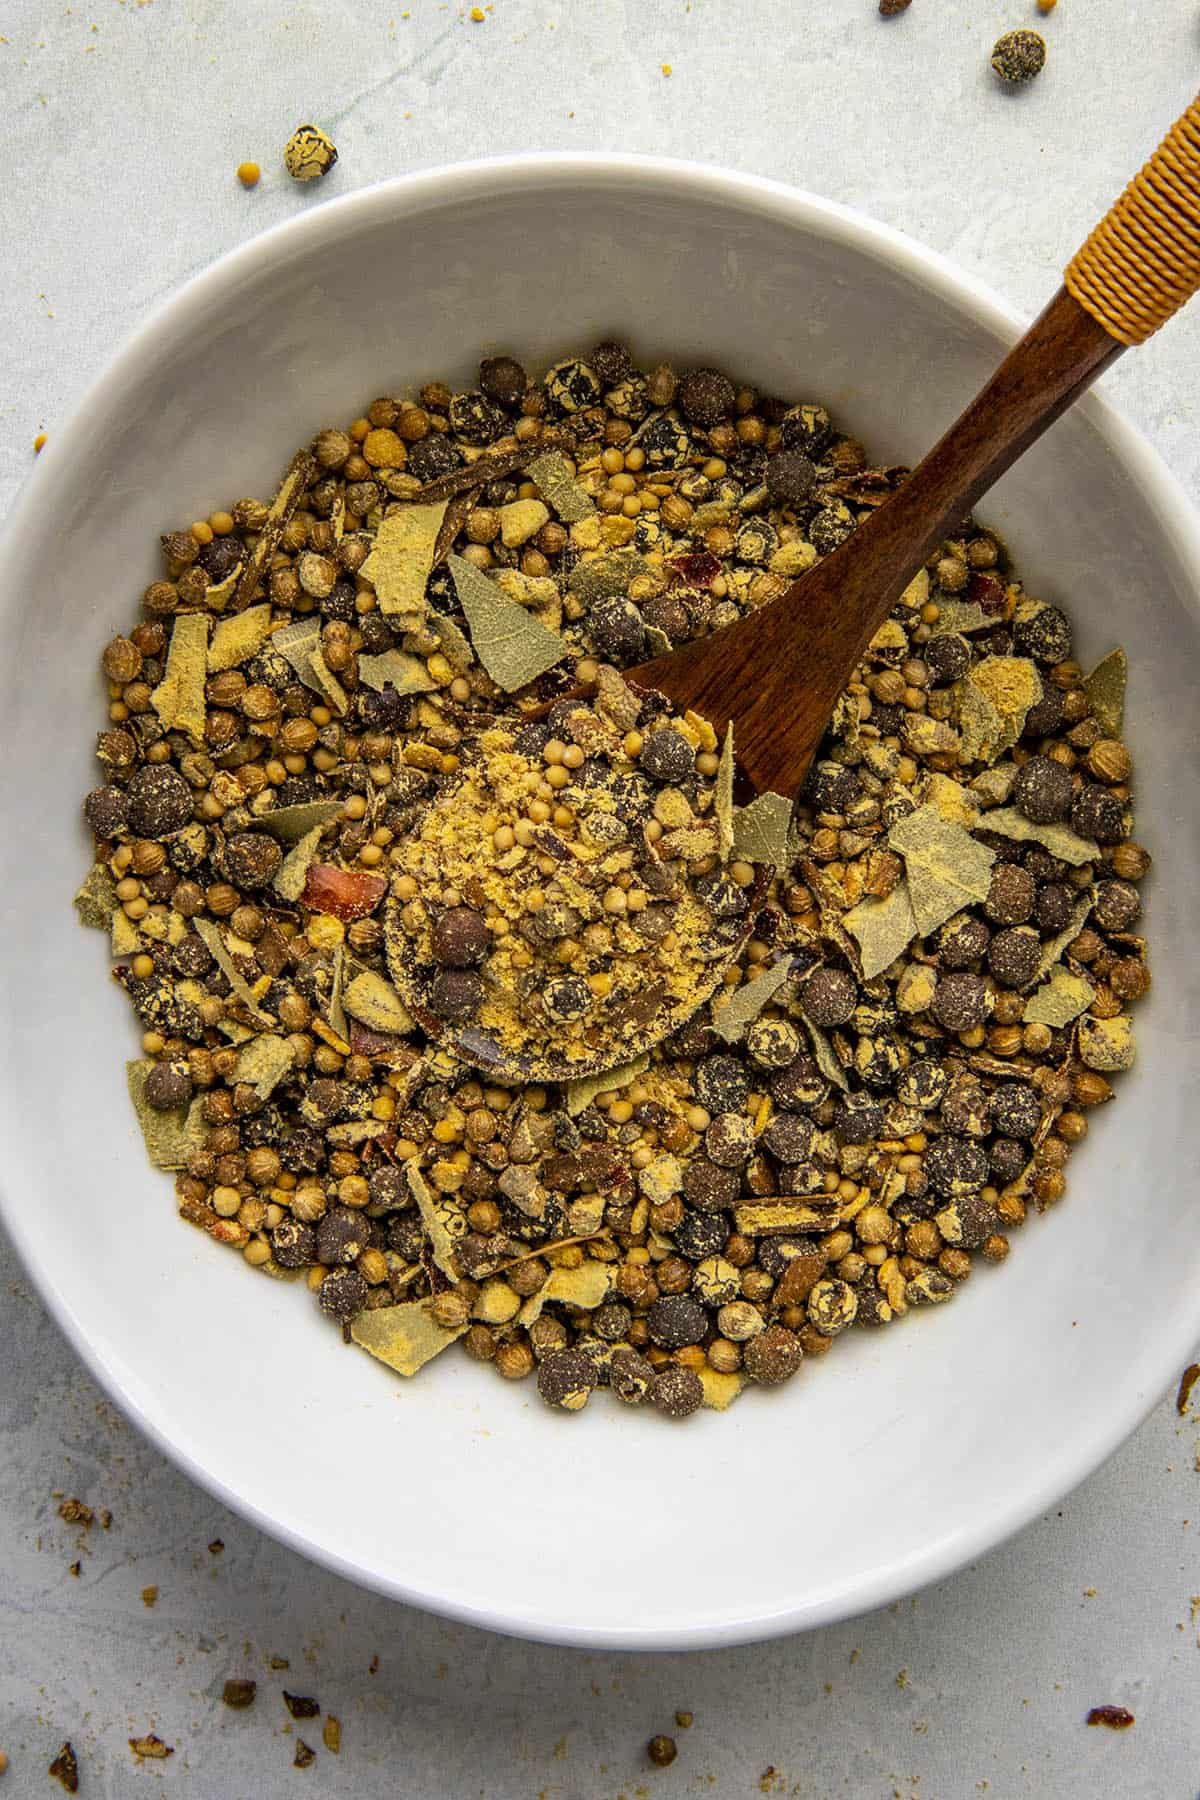 Homemade Pickling Spice ready to use